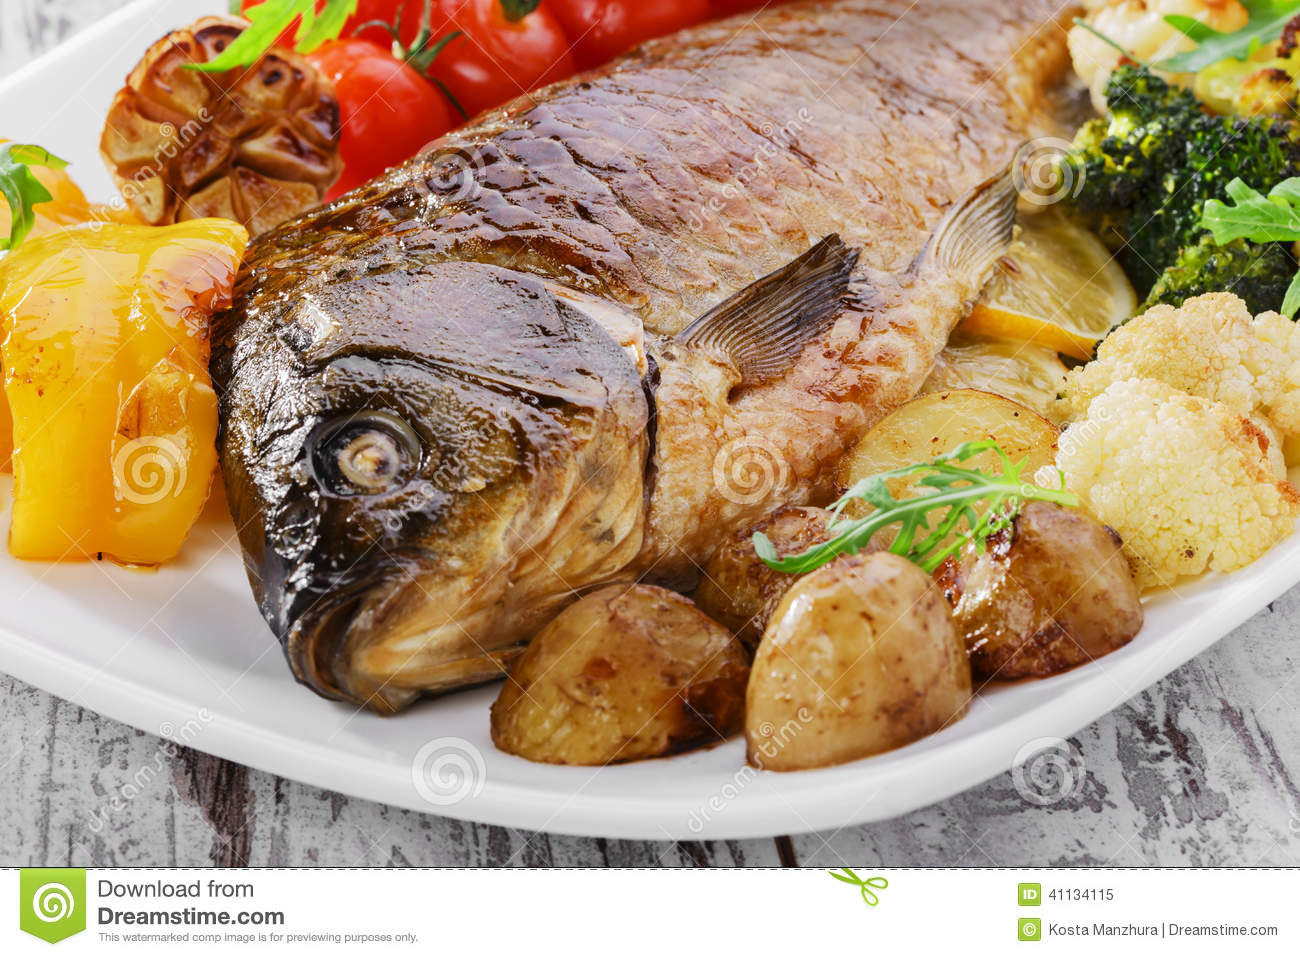 Baked fish with vegetables stock photo image 41134115 for What vegetables go with fish